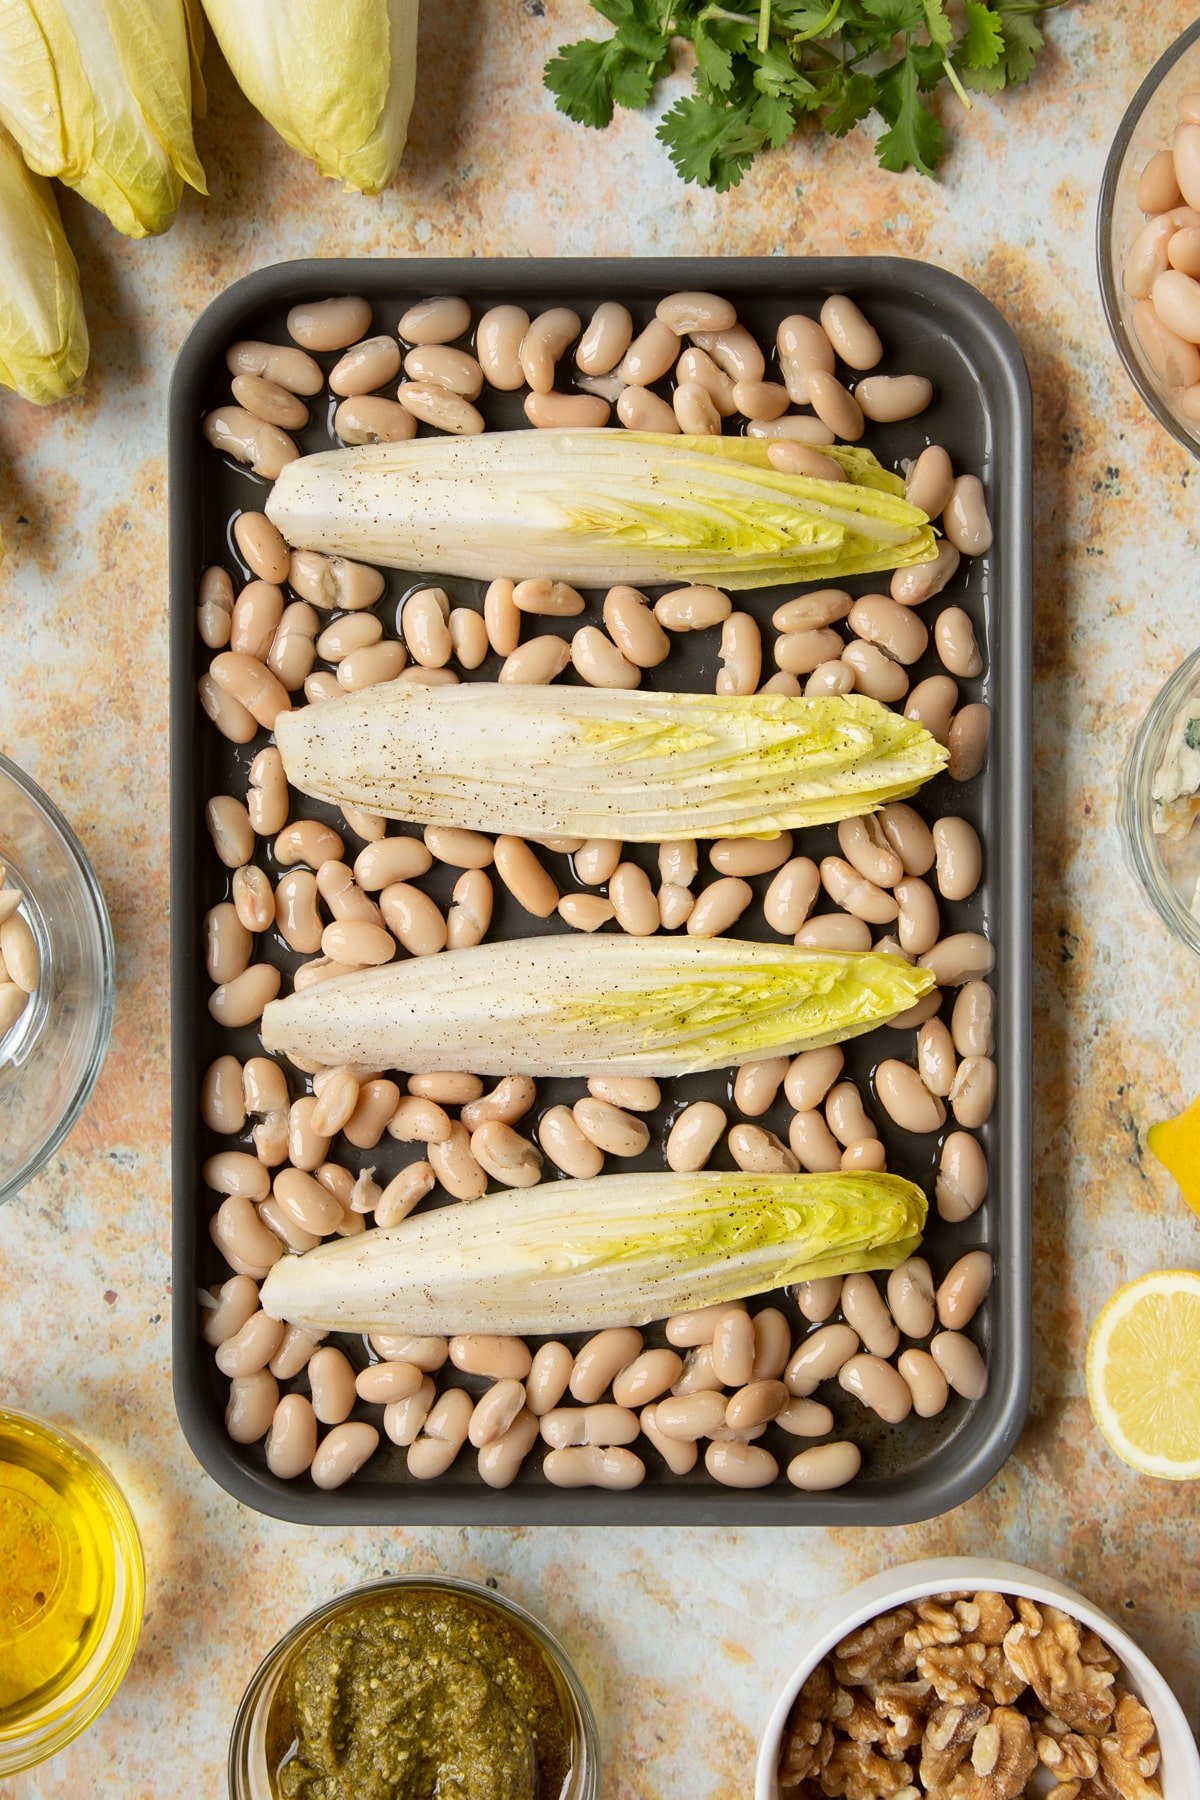 Chicory, cannellini beans and oil on a tray. They have been seasoned.